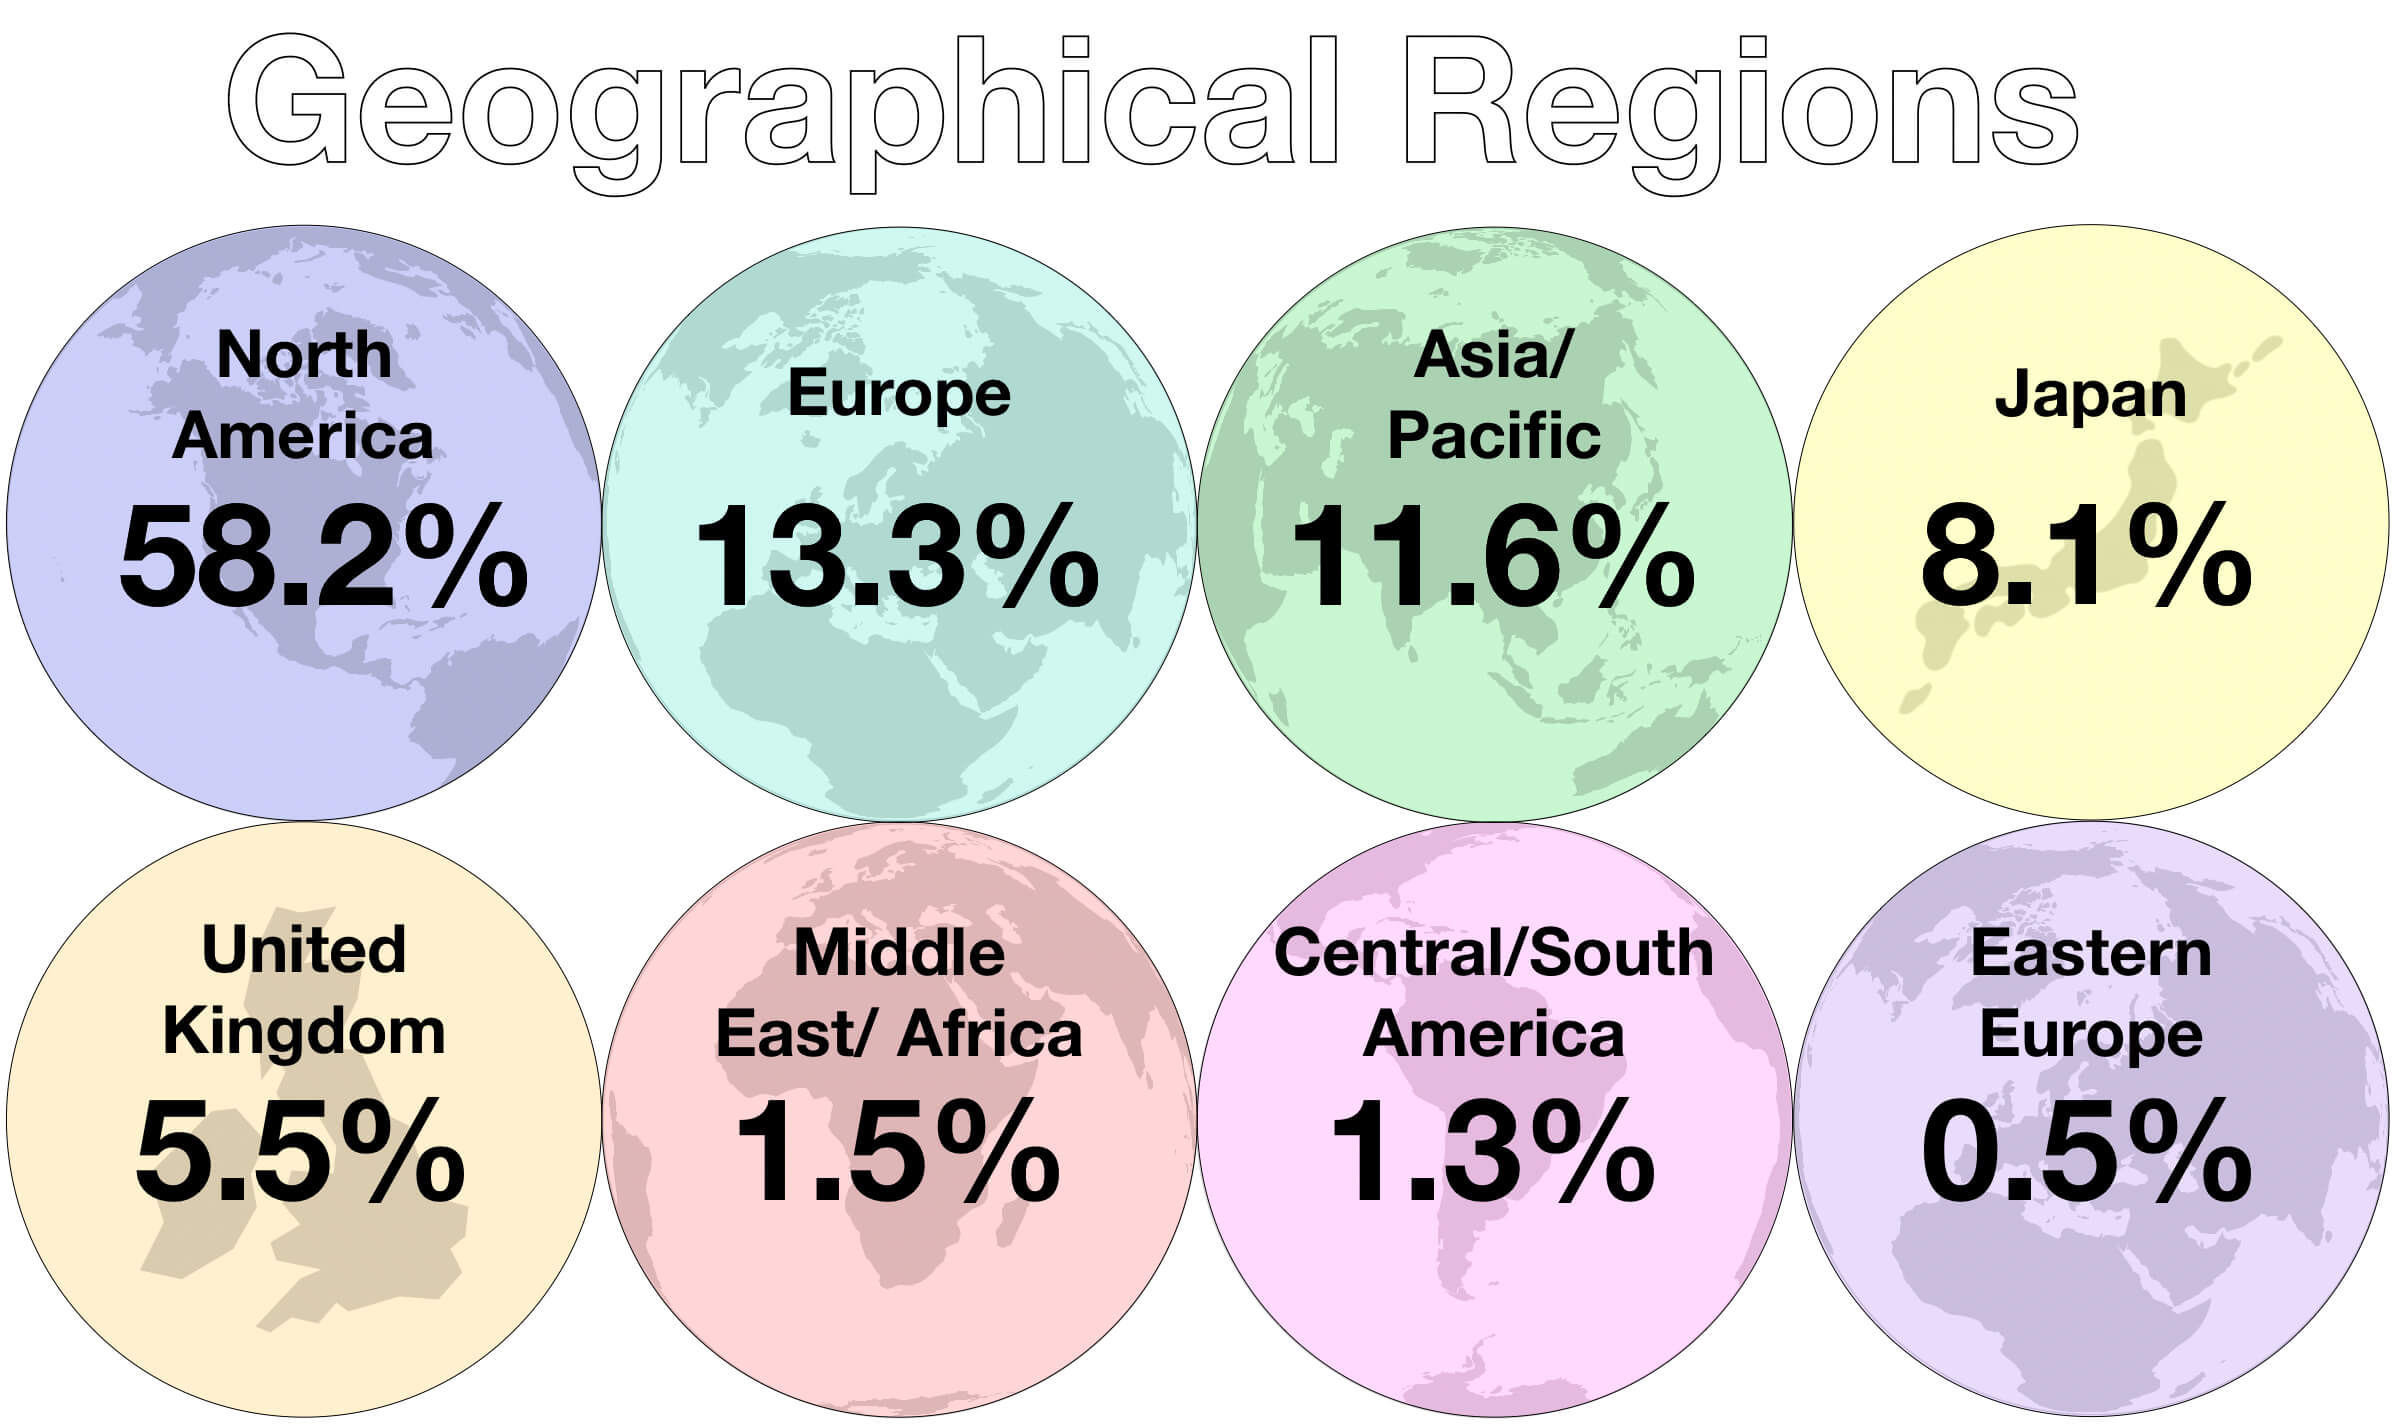 November 2018 Geographical Regions of Passive Investments